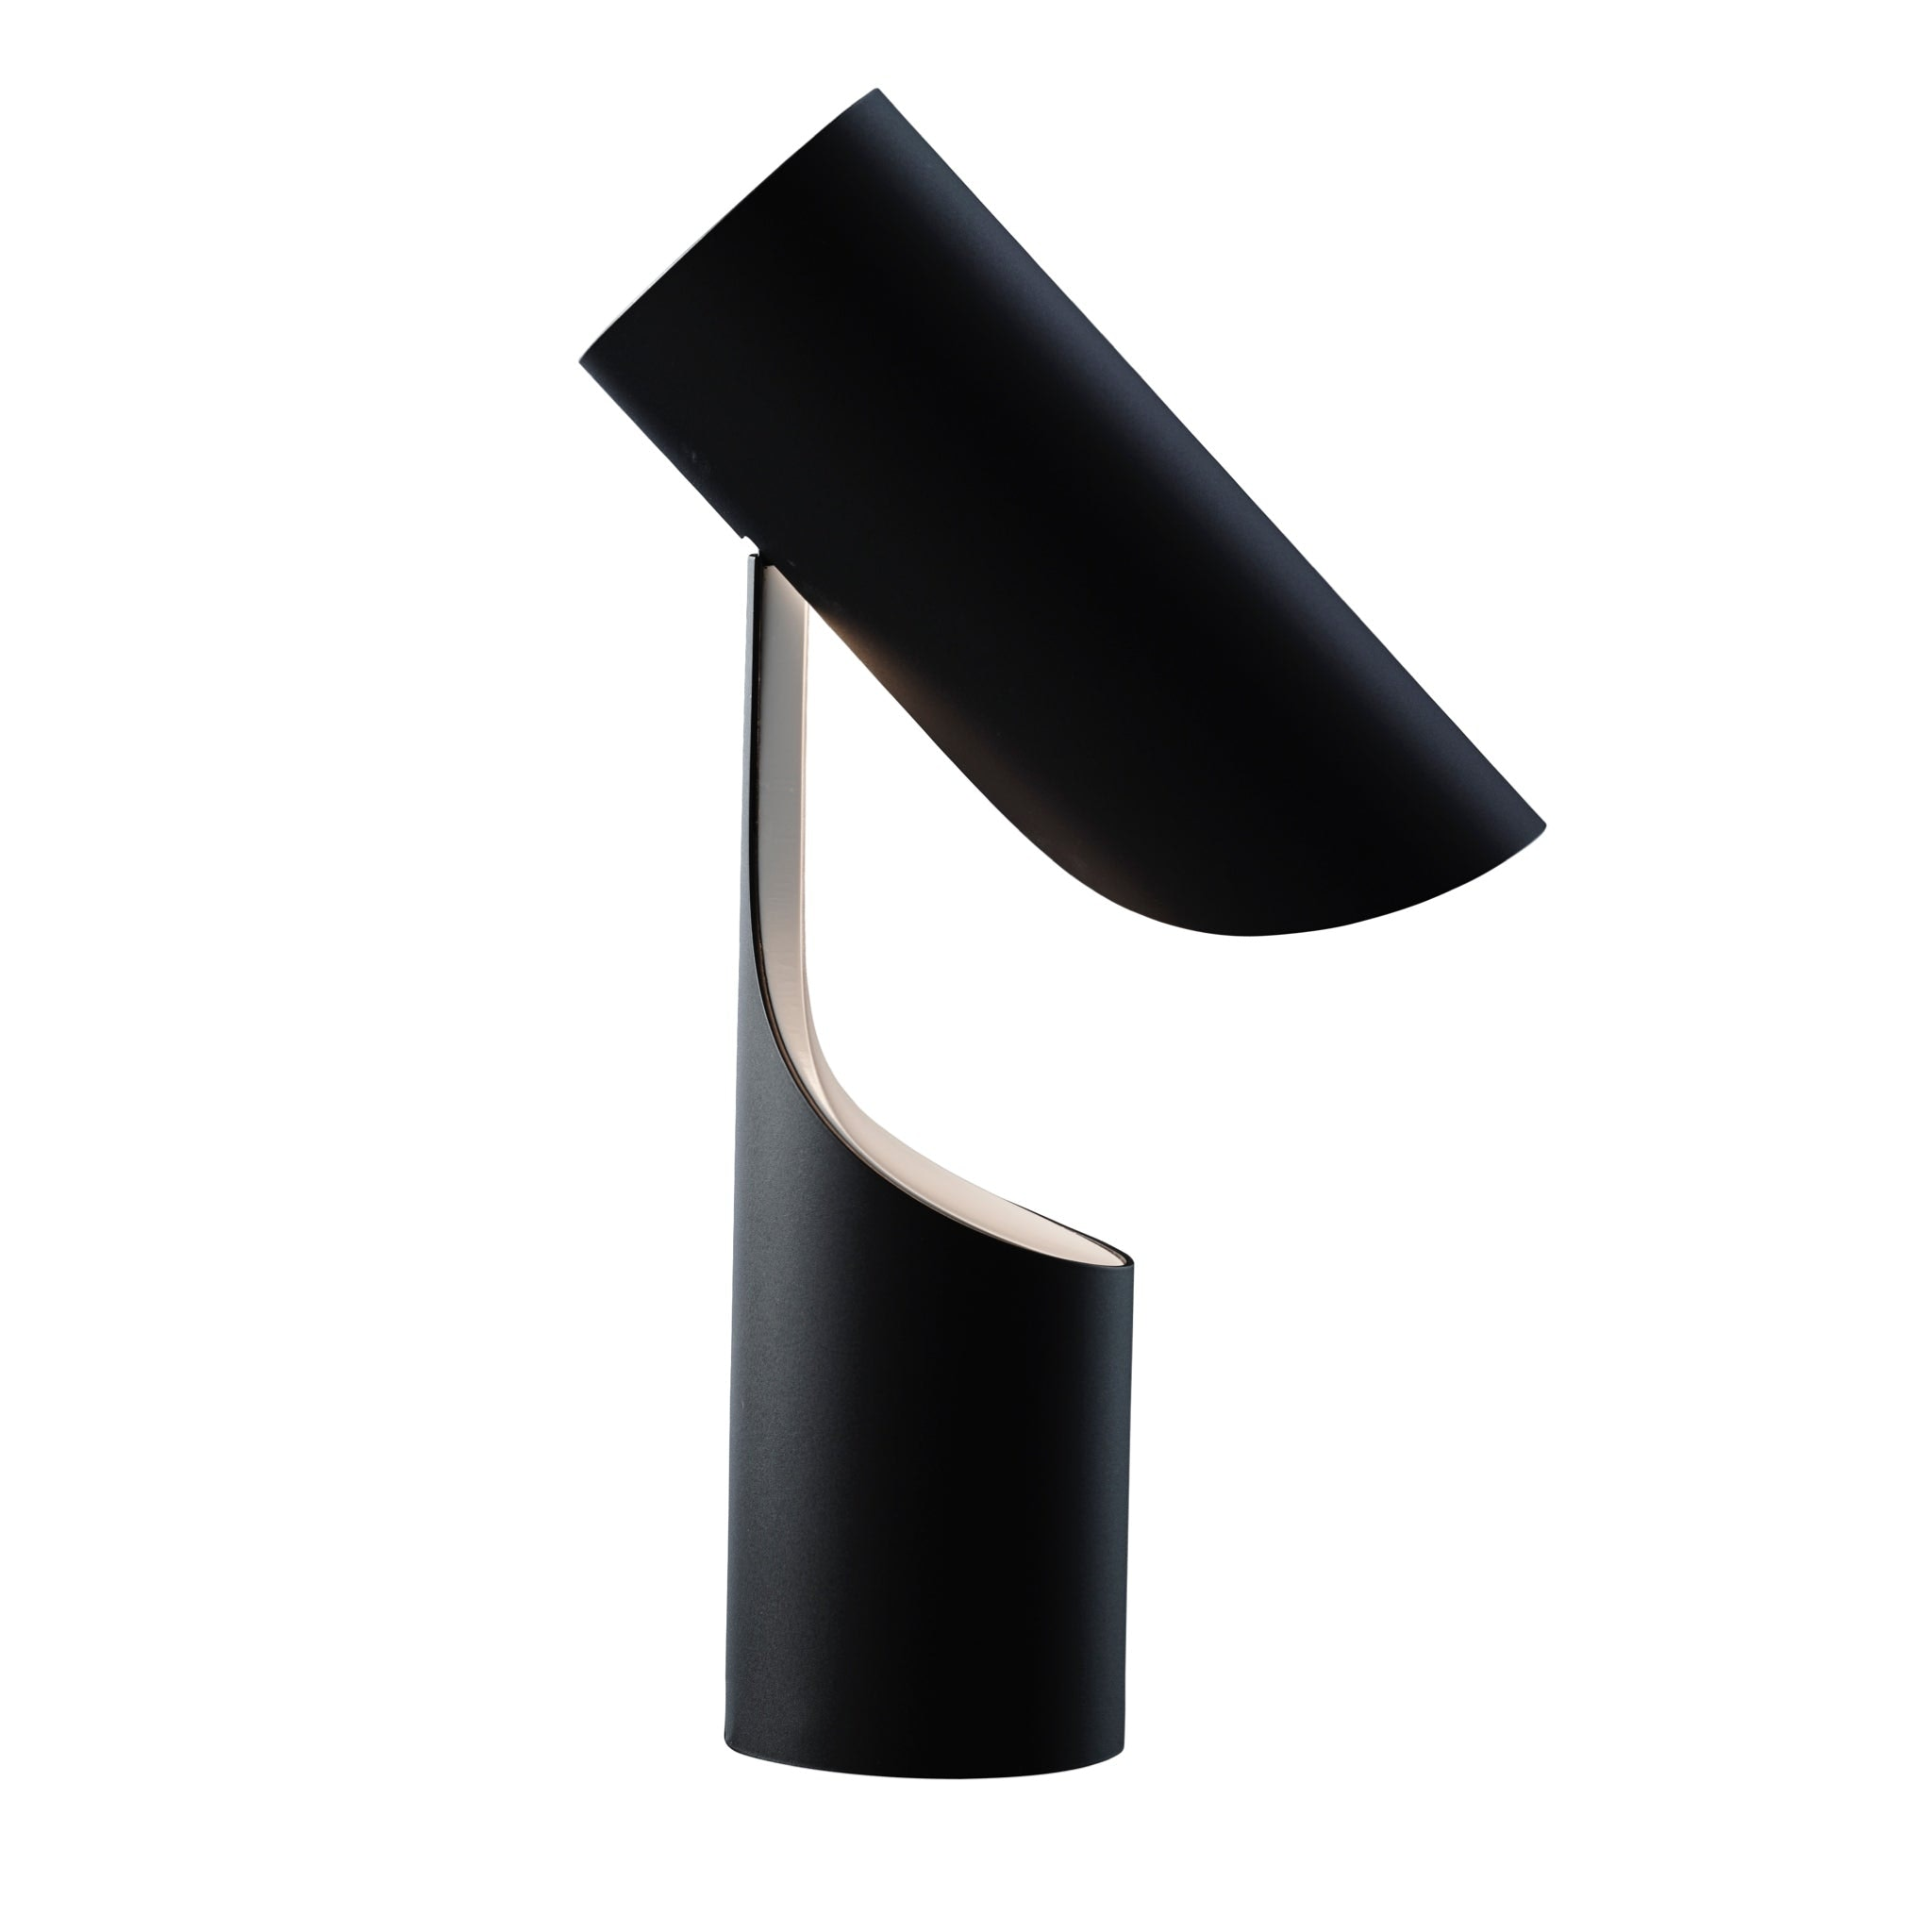 Mutatio Table Lamp by Le Klint